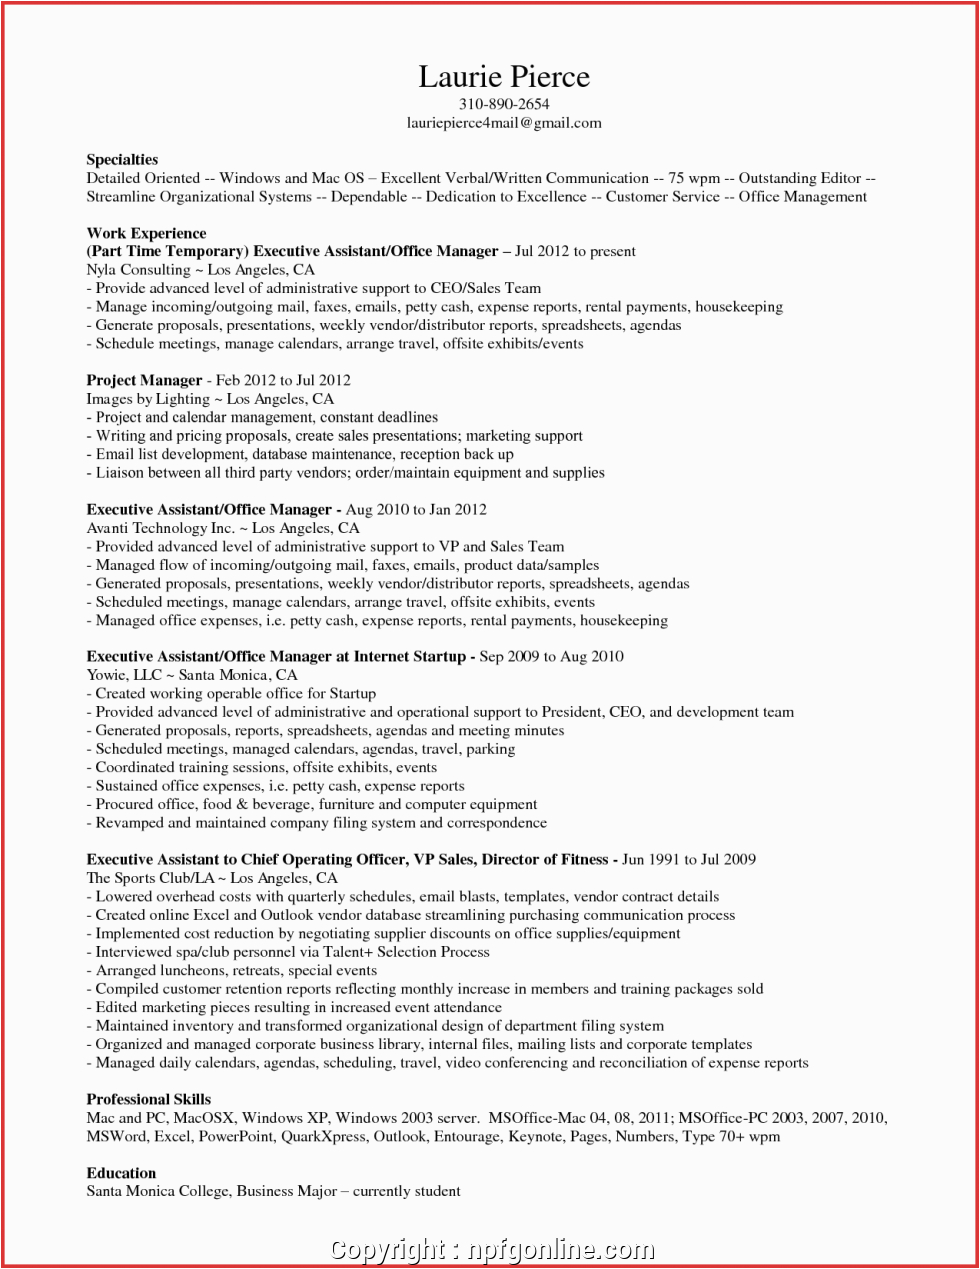 Sample Resume for Executive assistant Office Manager New Sample Resume Executive assistant Fice Manager New